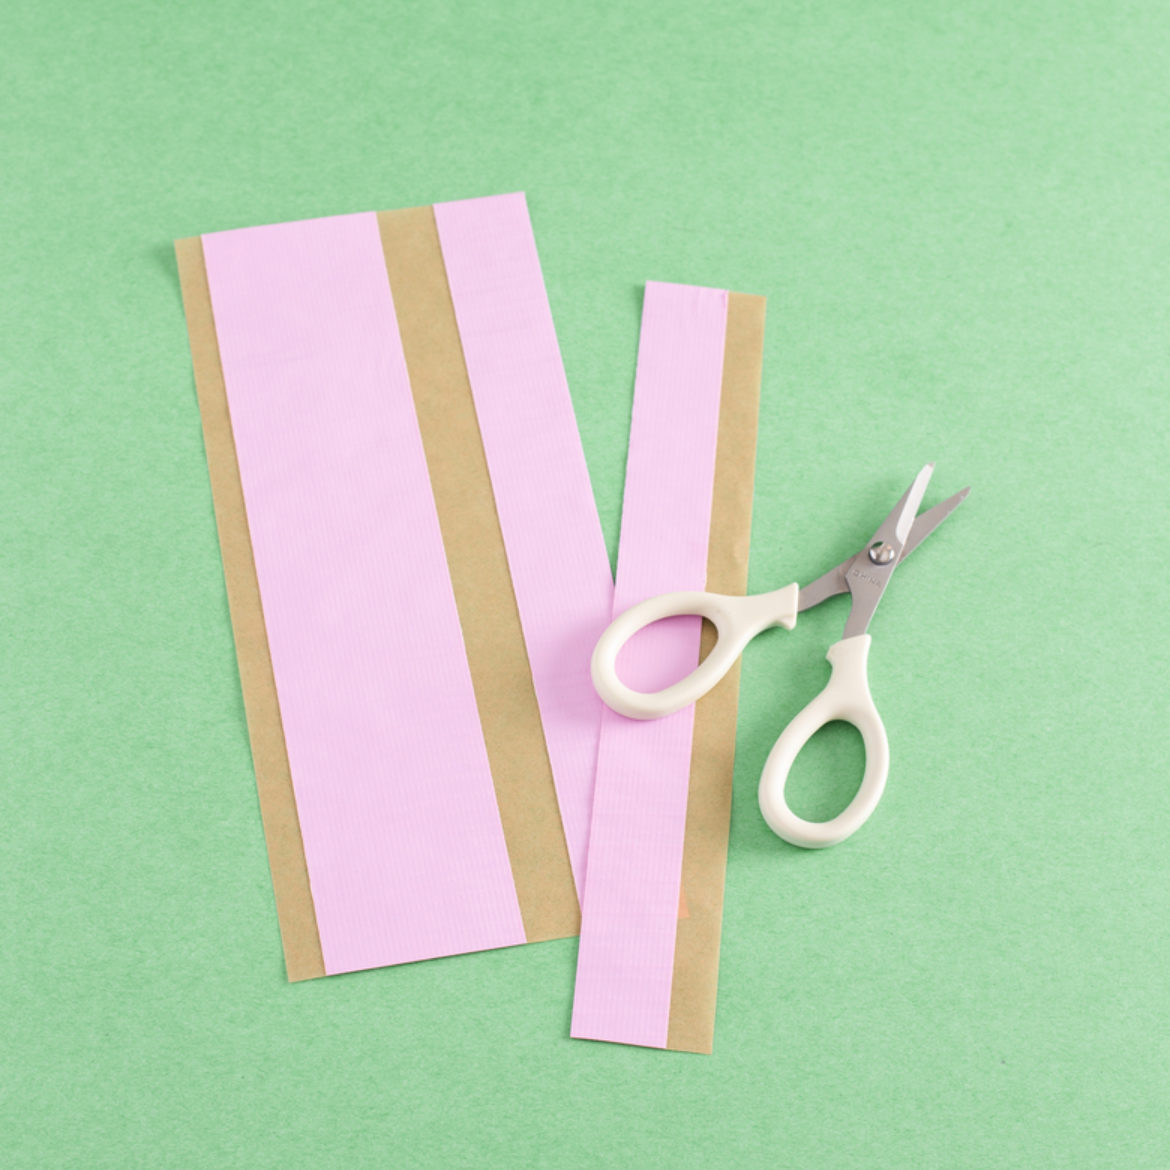 Strips of tape cut to mathc the length of your box, then cut length wise to create 1 inch wide strips